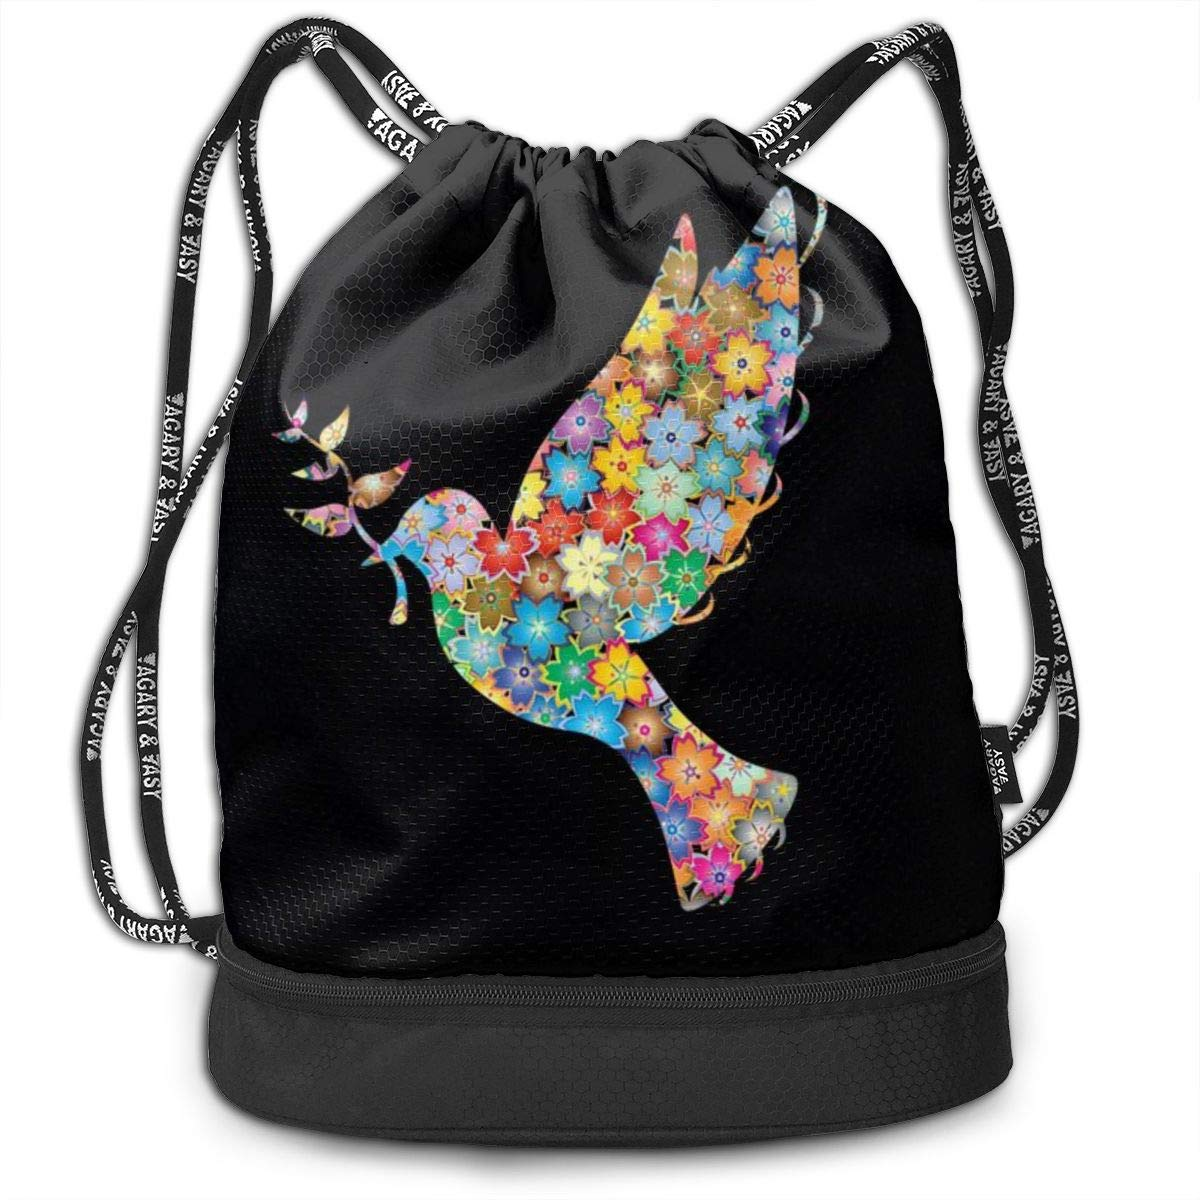 Address Verb Drawstring Backpack with Pocket Multifunctional Sturdy Flowers Dove Sackpack Sports Gym Shoulder String Bags by Address Verb